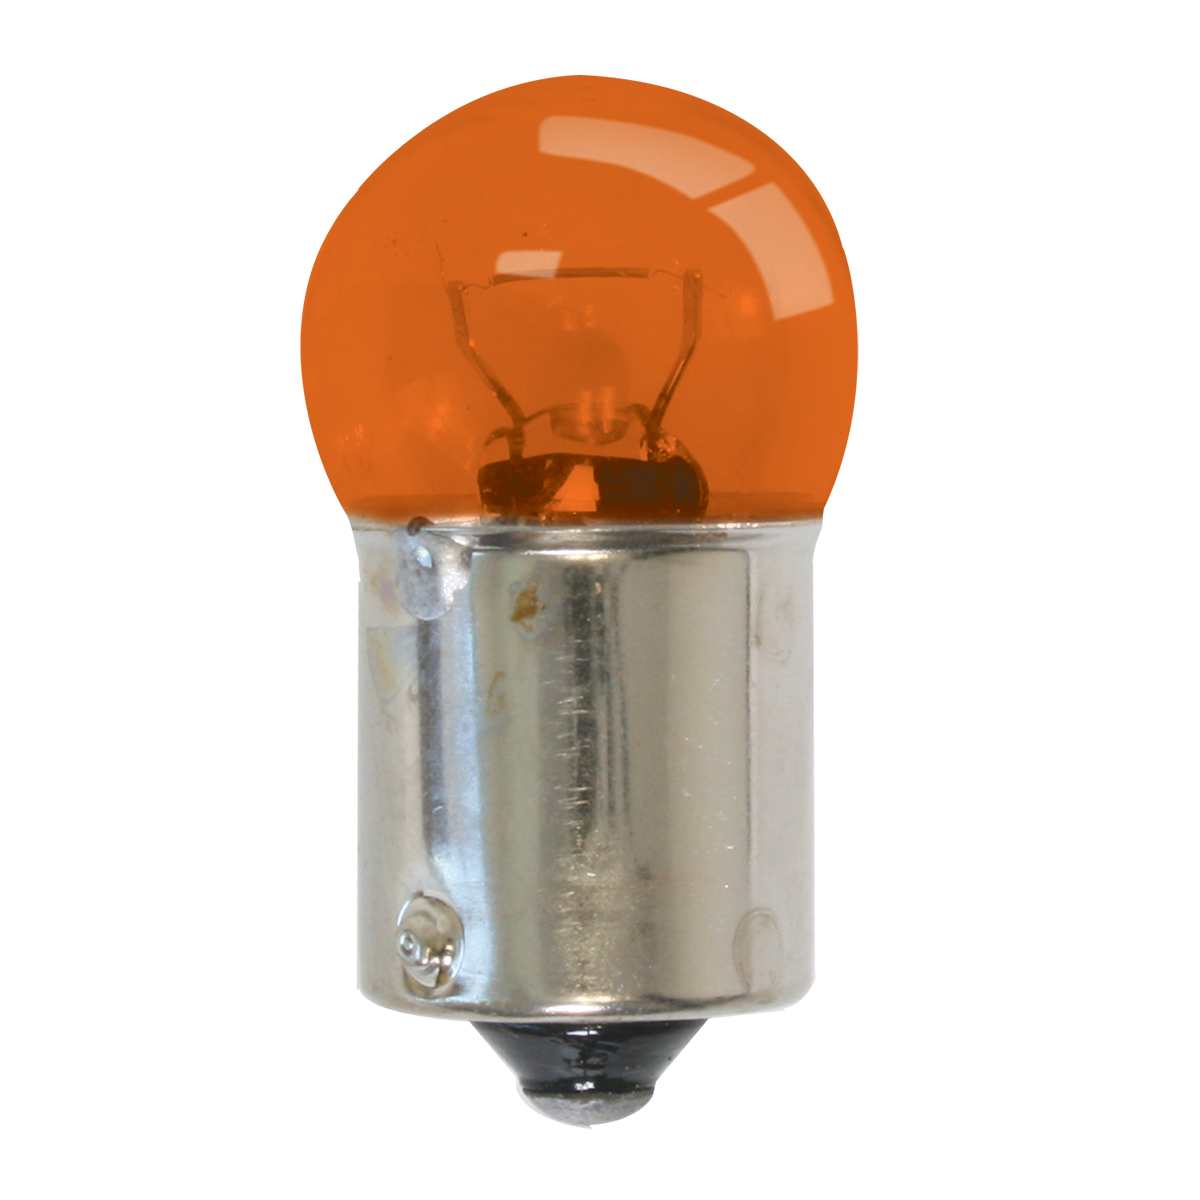 #79140 Miniature Replacement #67 Amber Light Bulb